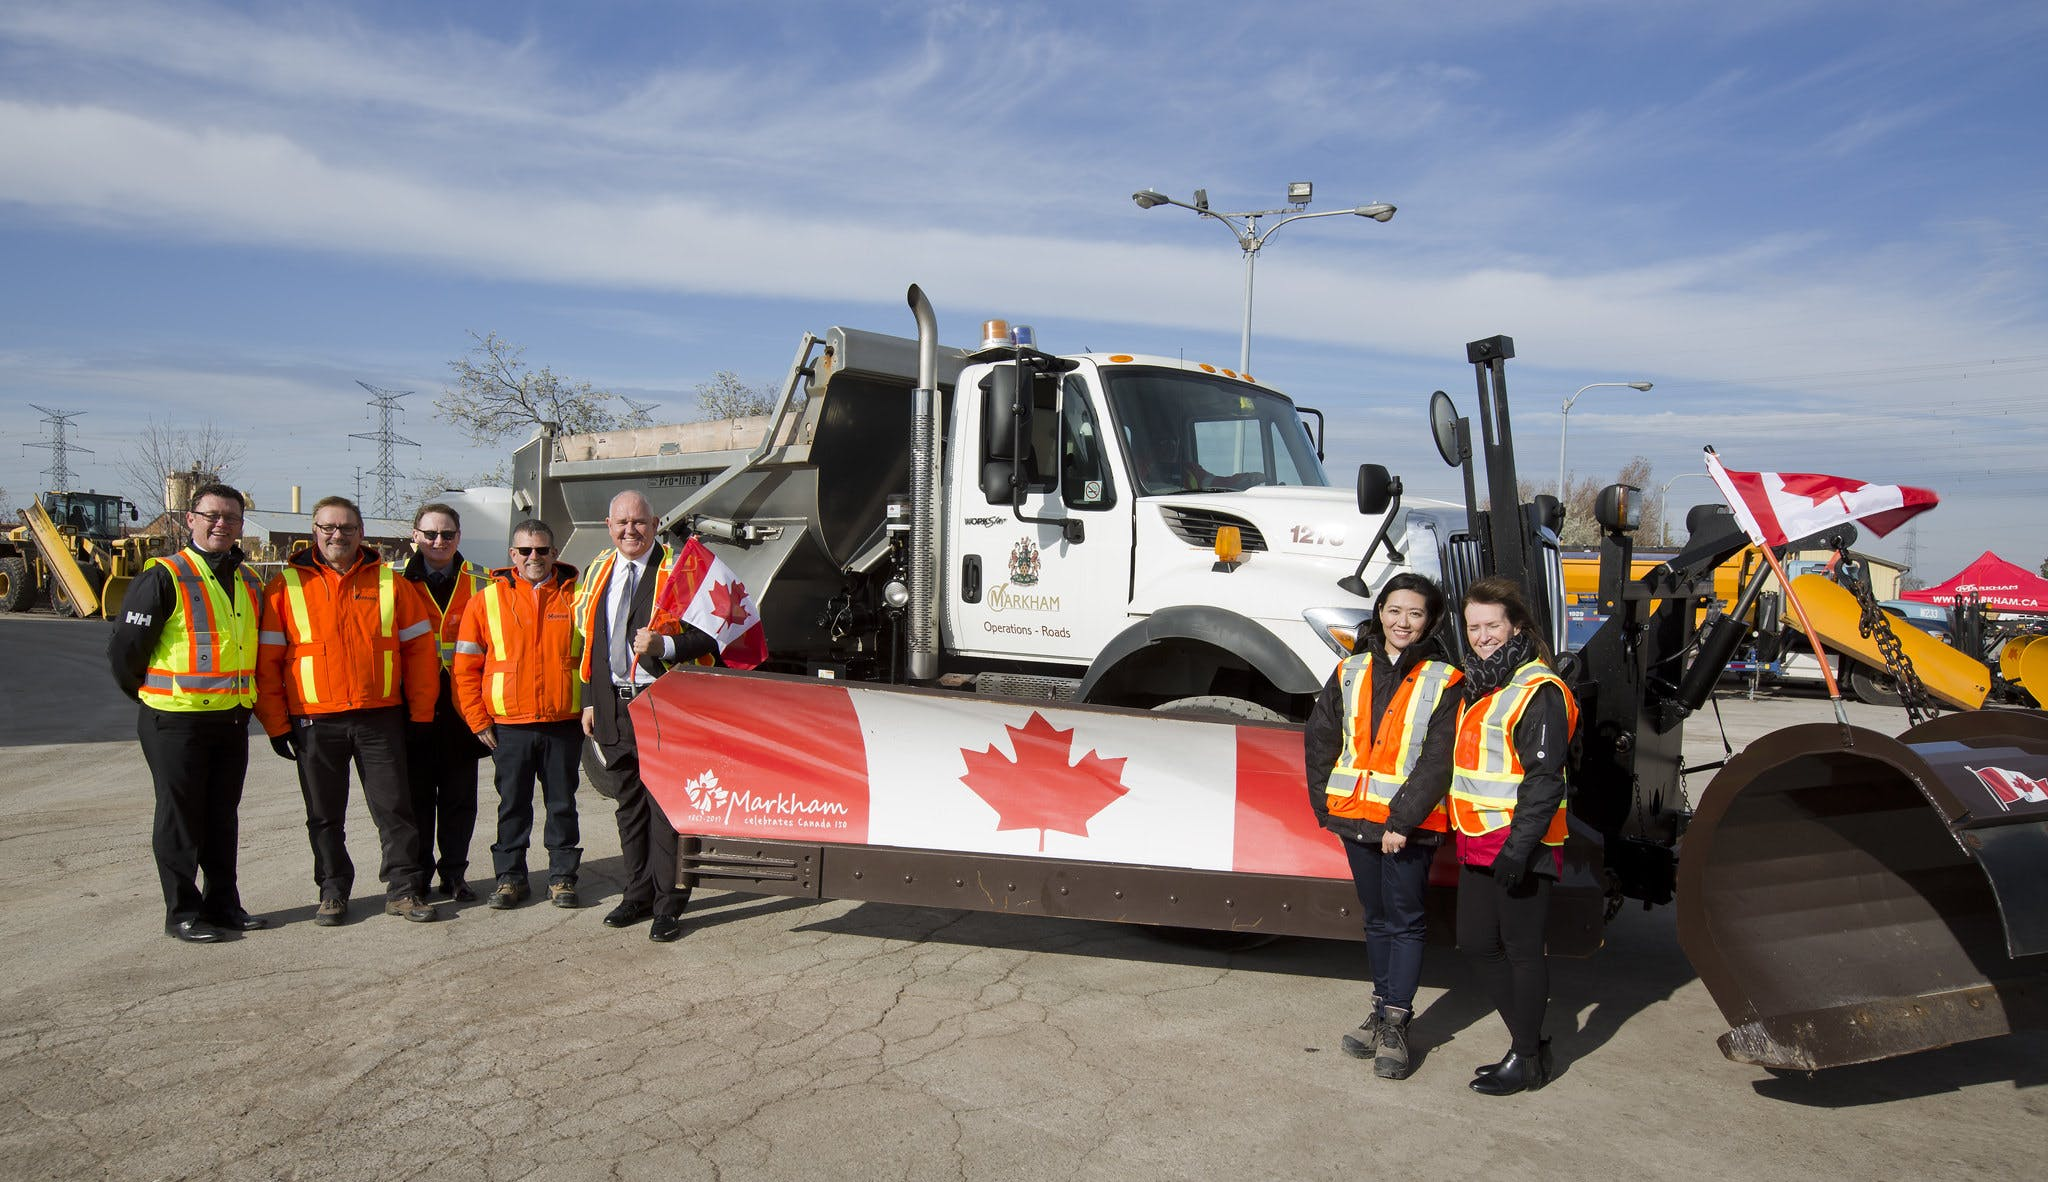 Markham - Canada Plow - News Conference 2017